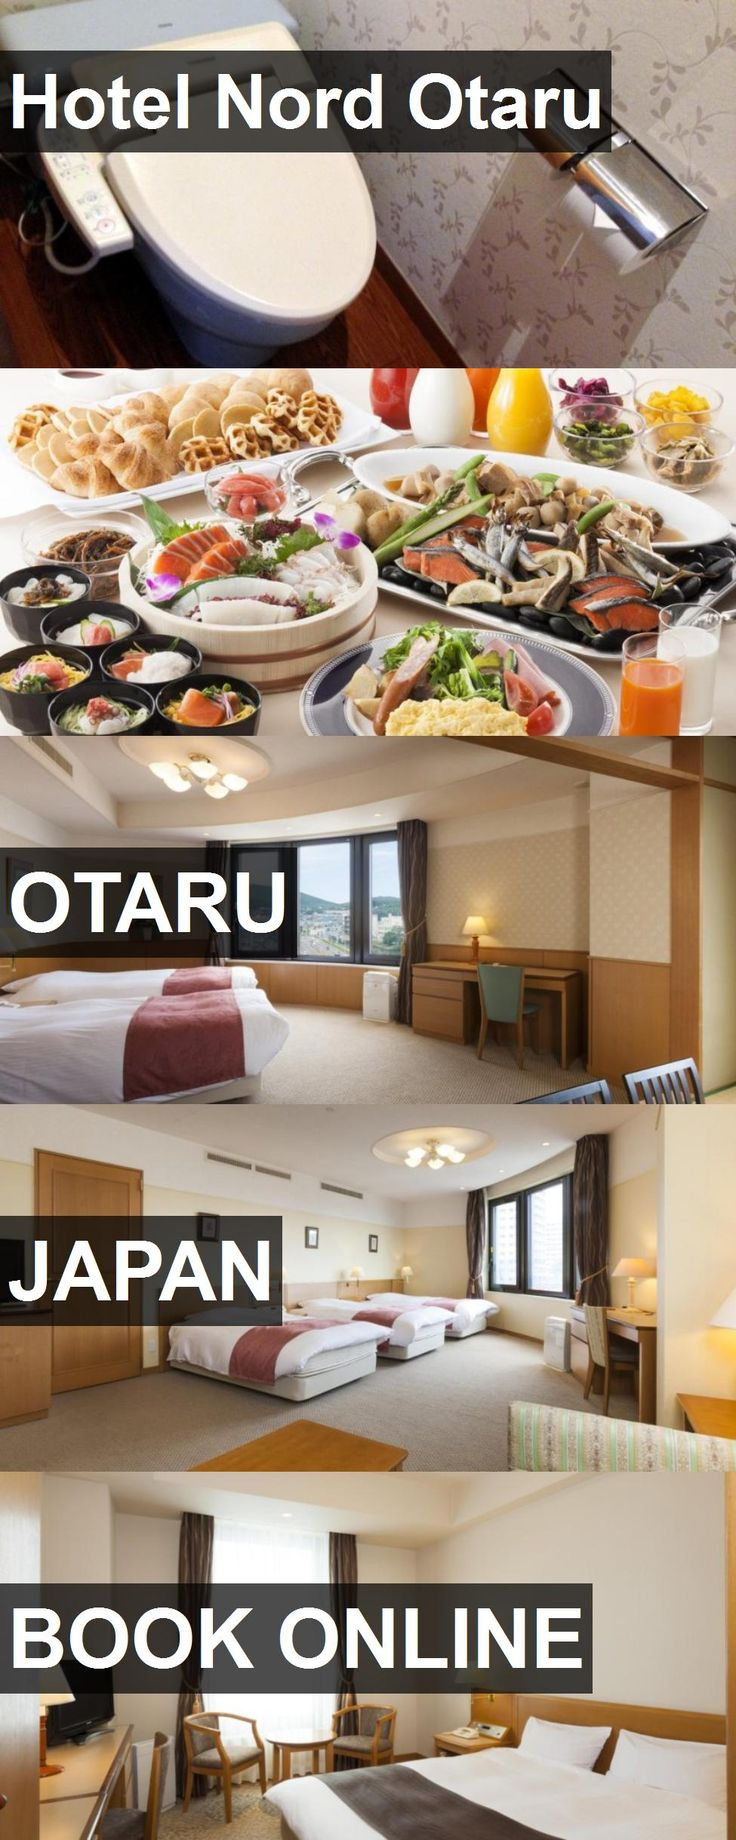 Hotel Nord Otaru in Otaru, Japan. For more information, photos, reviews and best prices please follow the link. #Japan #Otaru #travel #vacation #hotel